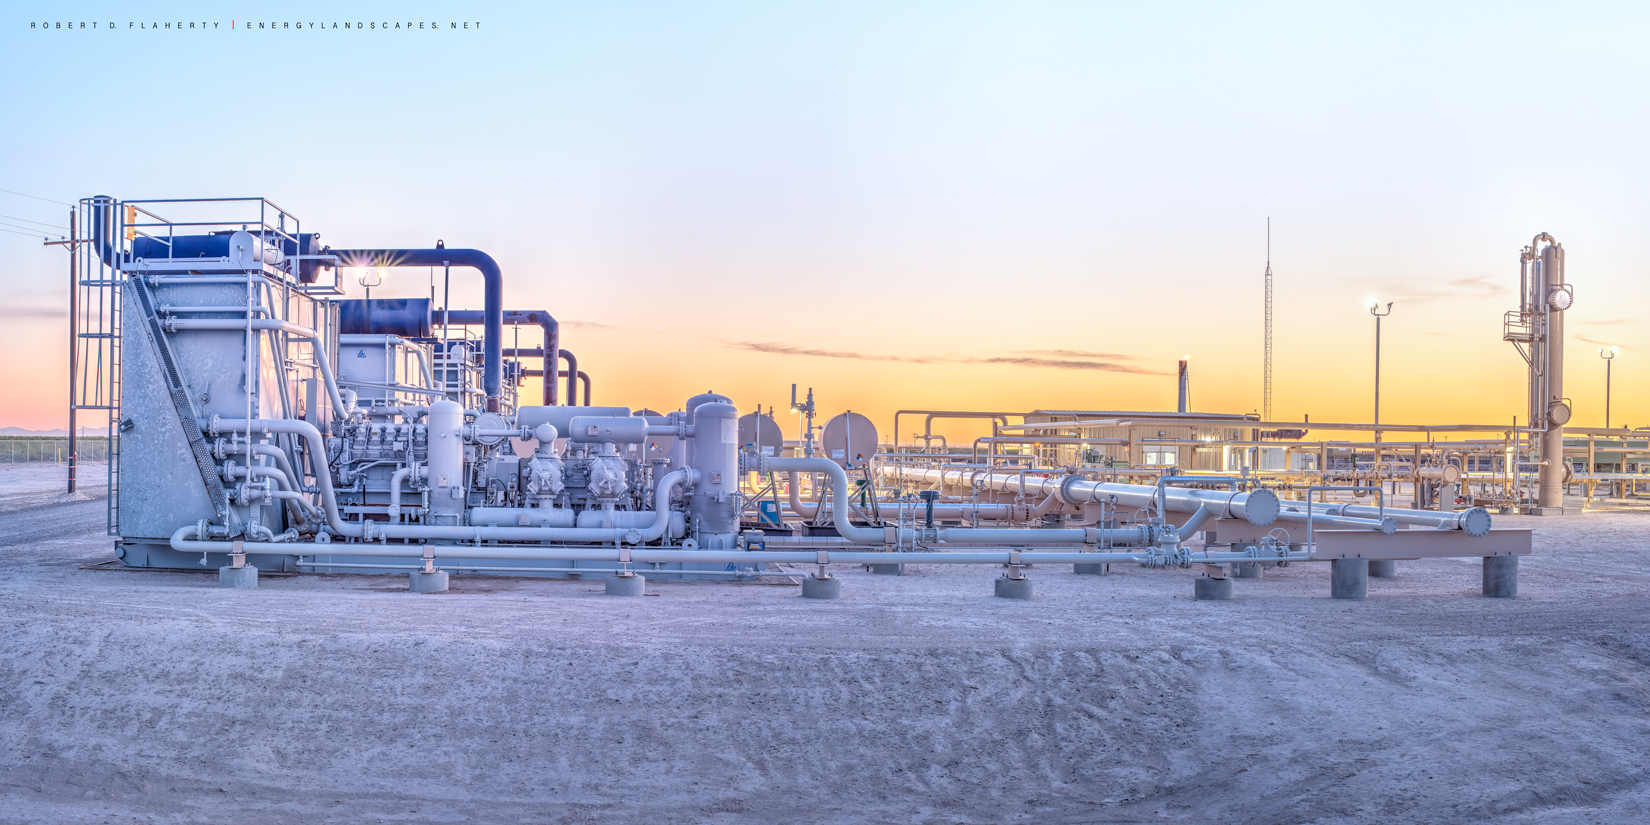 Delaware Compressor Detail is a 2:1 high resolution panorama featuring a compressor battery and gas plant at sunset. The location...